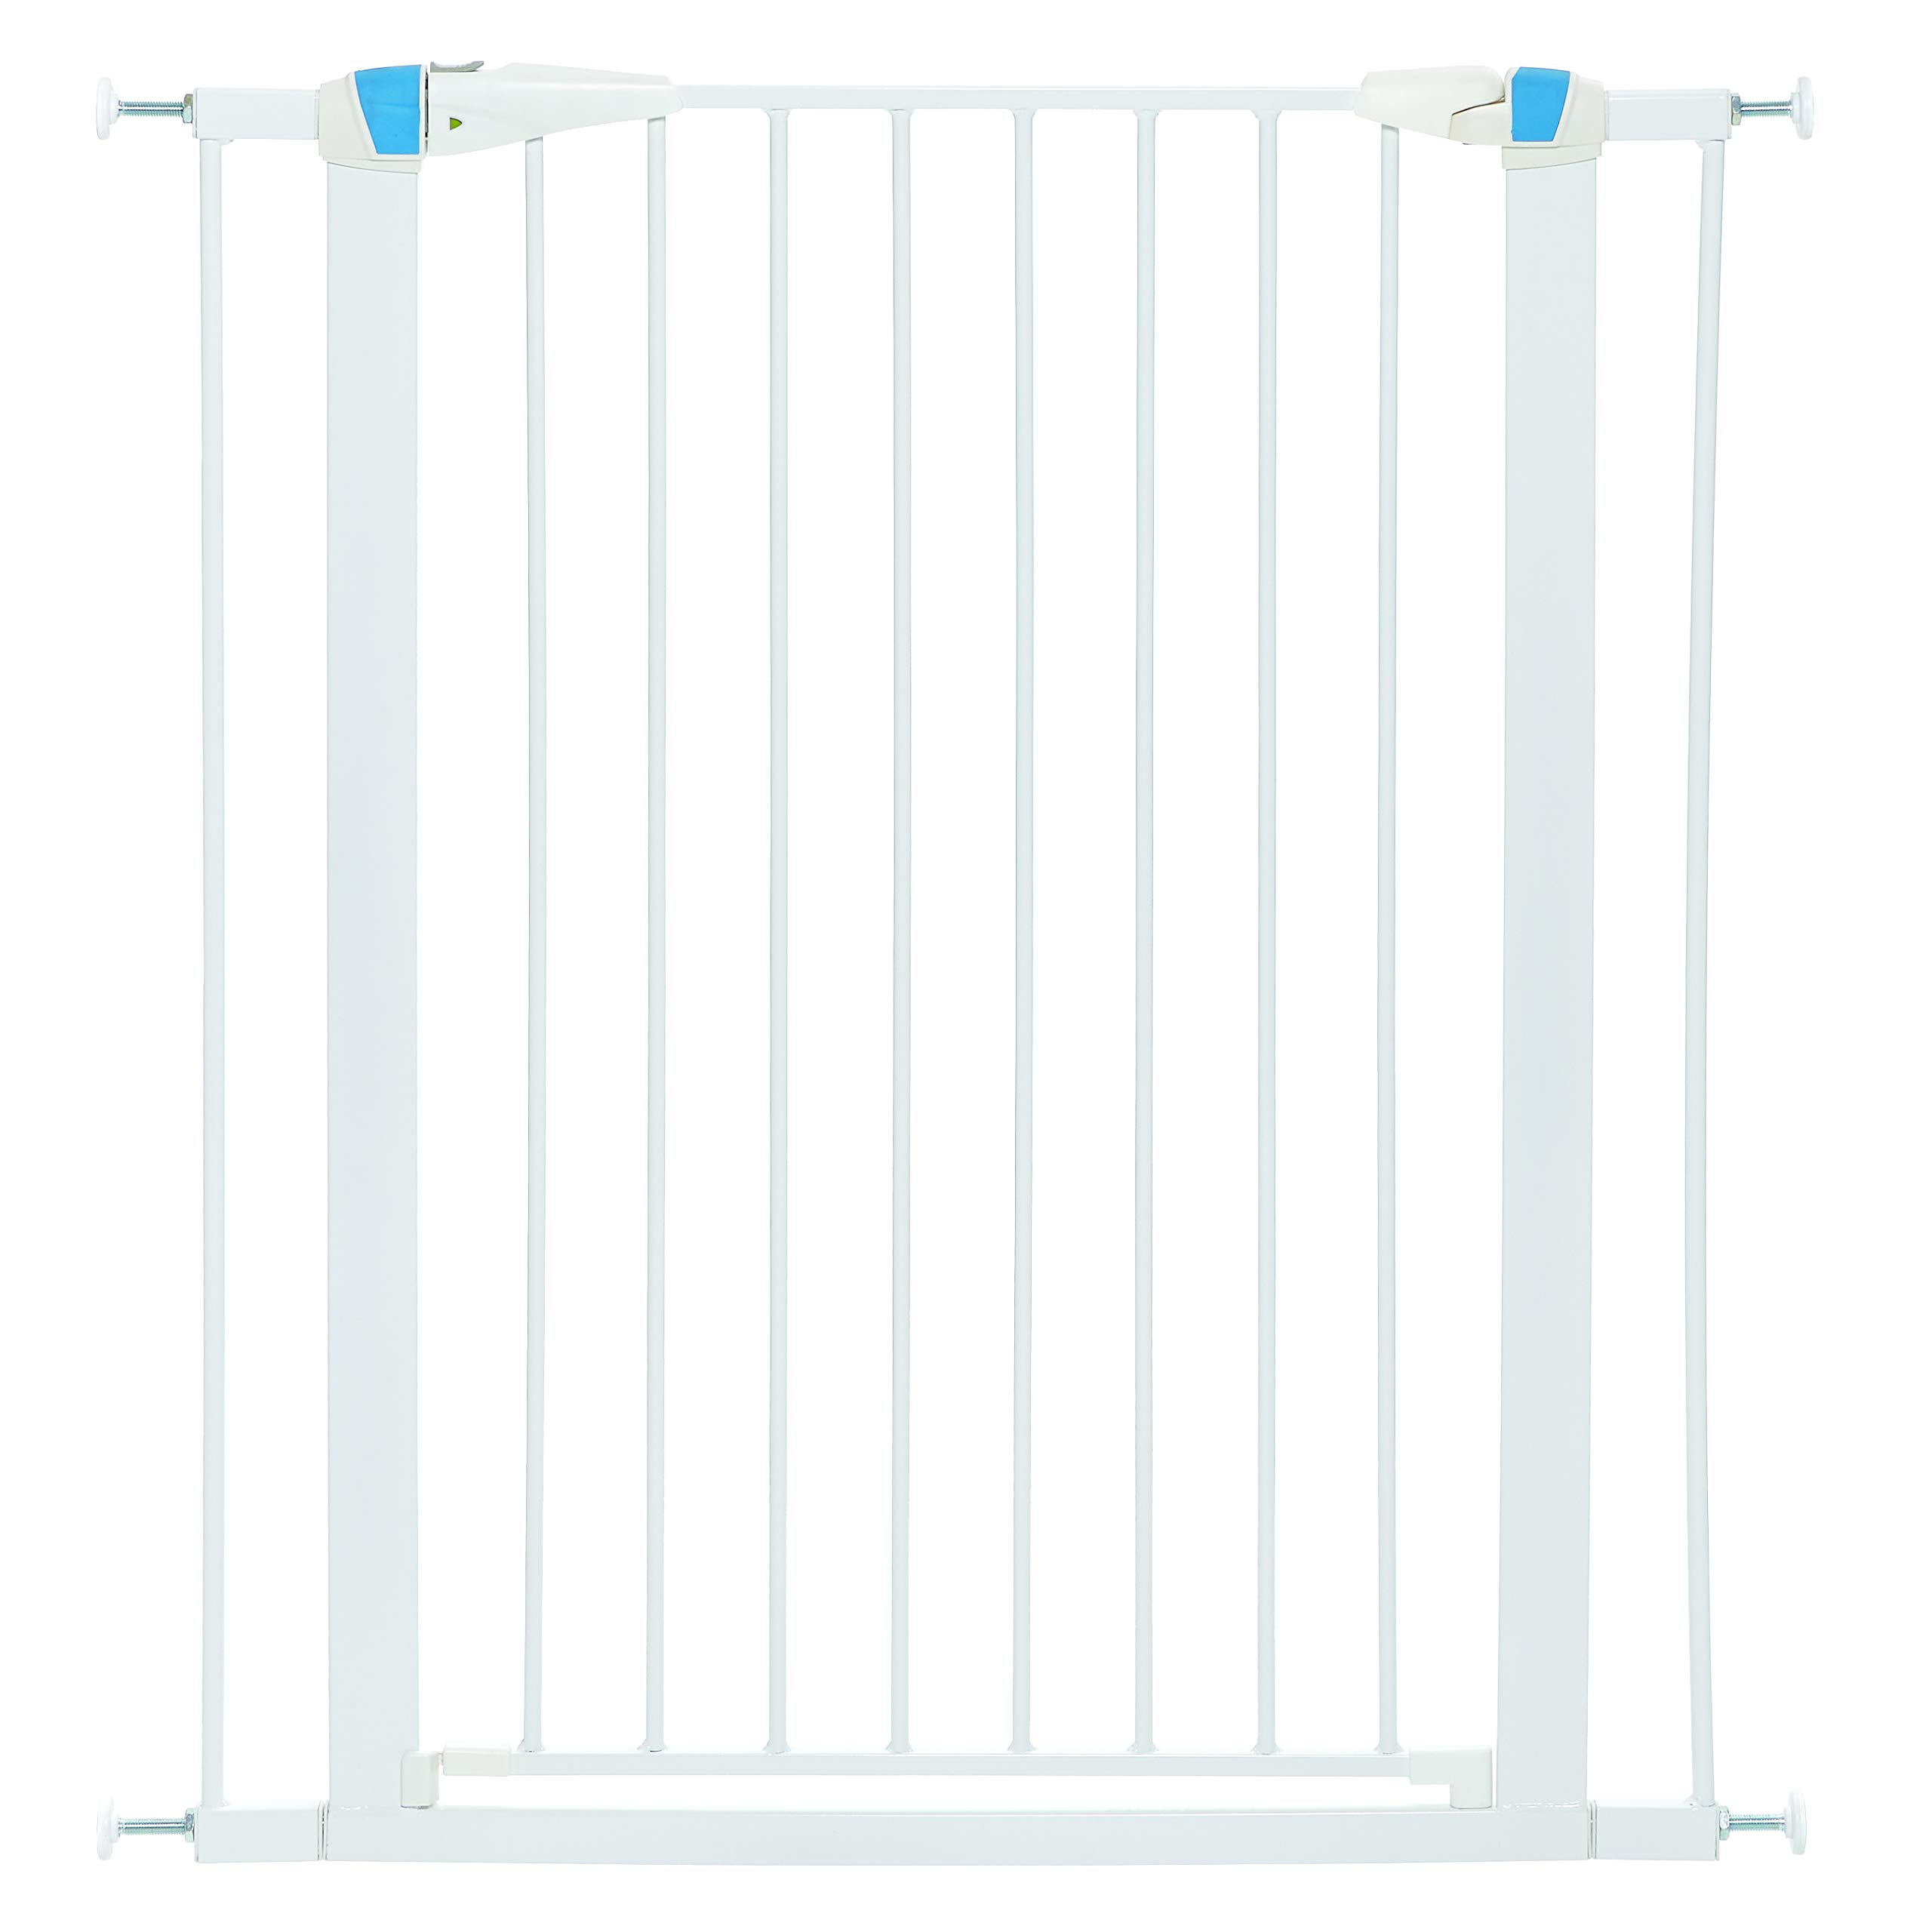 Pet Gate | 39'' High Walk-thru Steel Pet Gate by 29'' to 38'' Wide in Soft White w/ Glow Frame, X-Tall by MidWest Homes for Pets